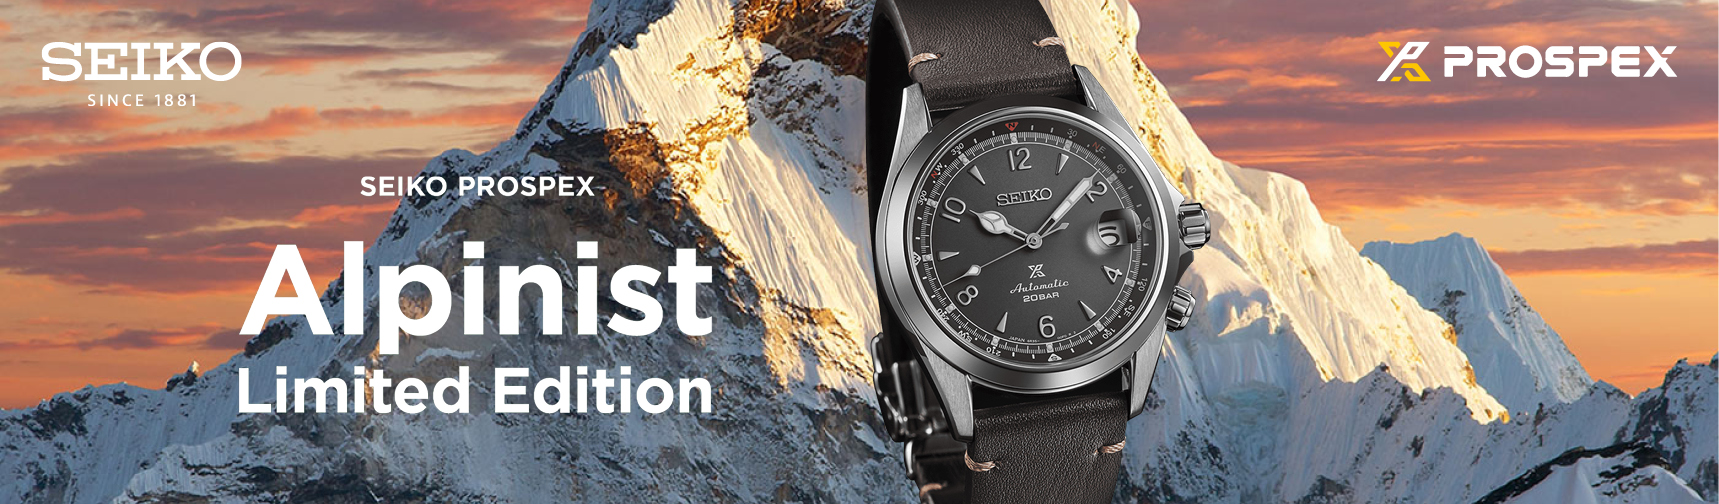 Alpinist Limited Edition